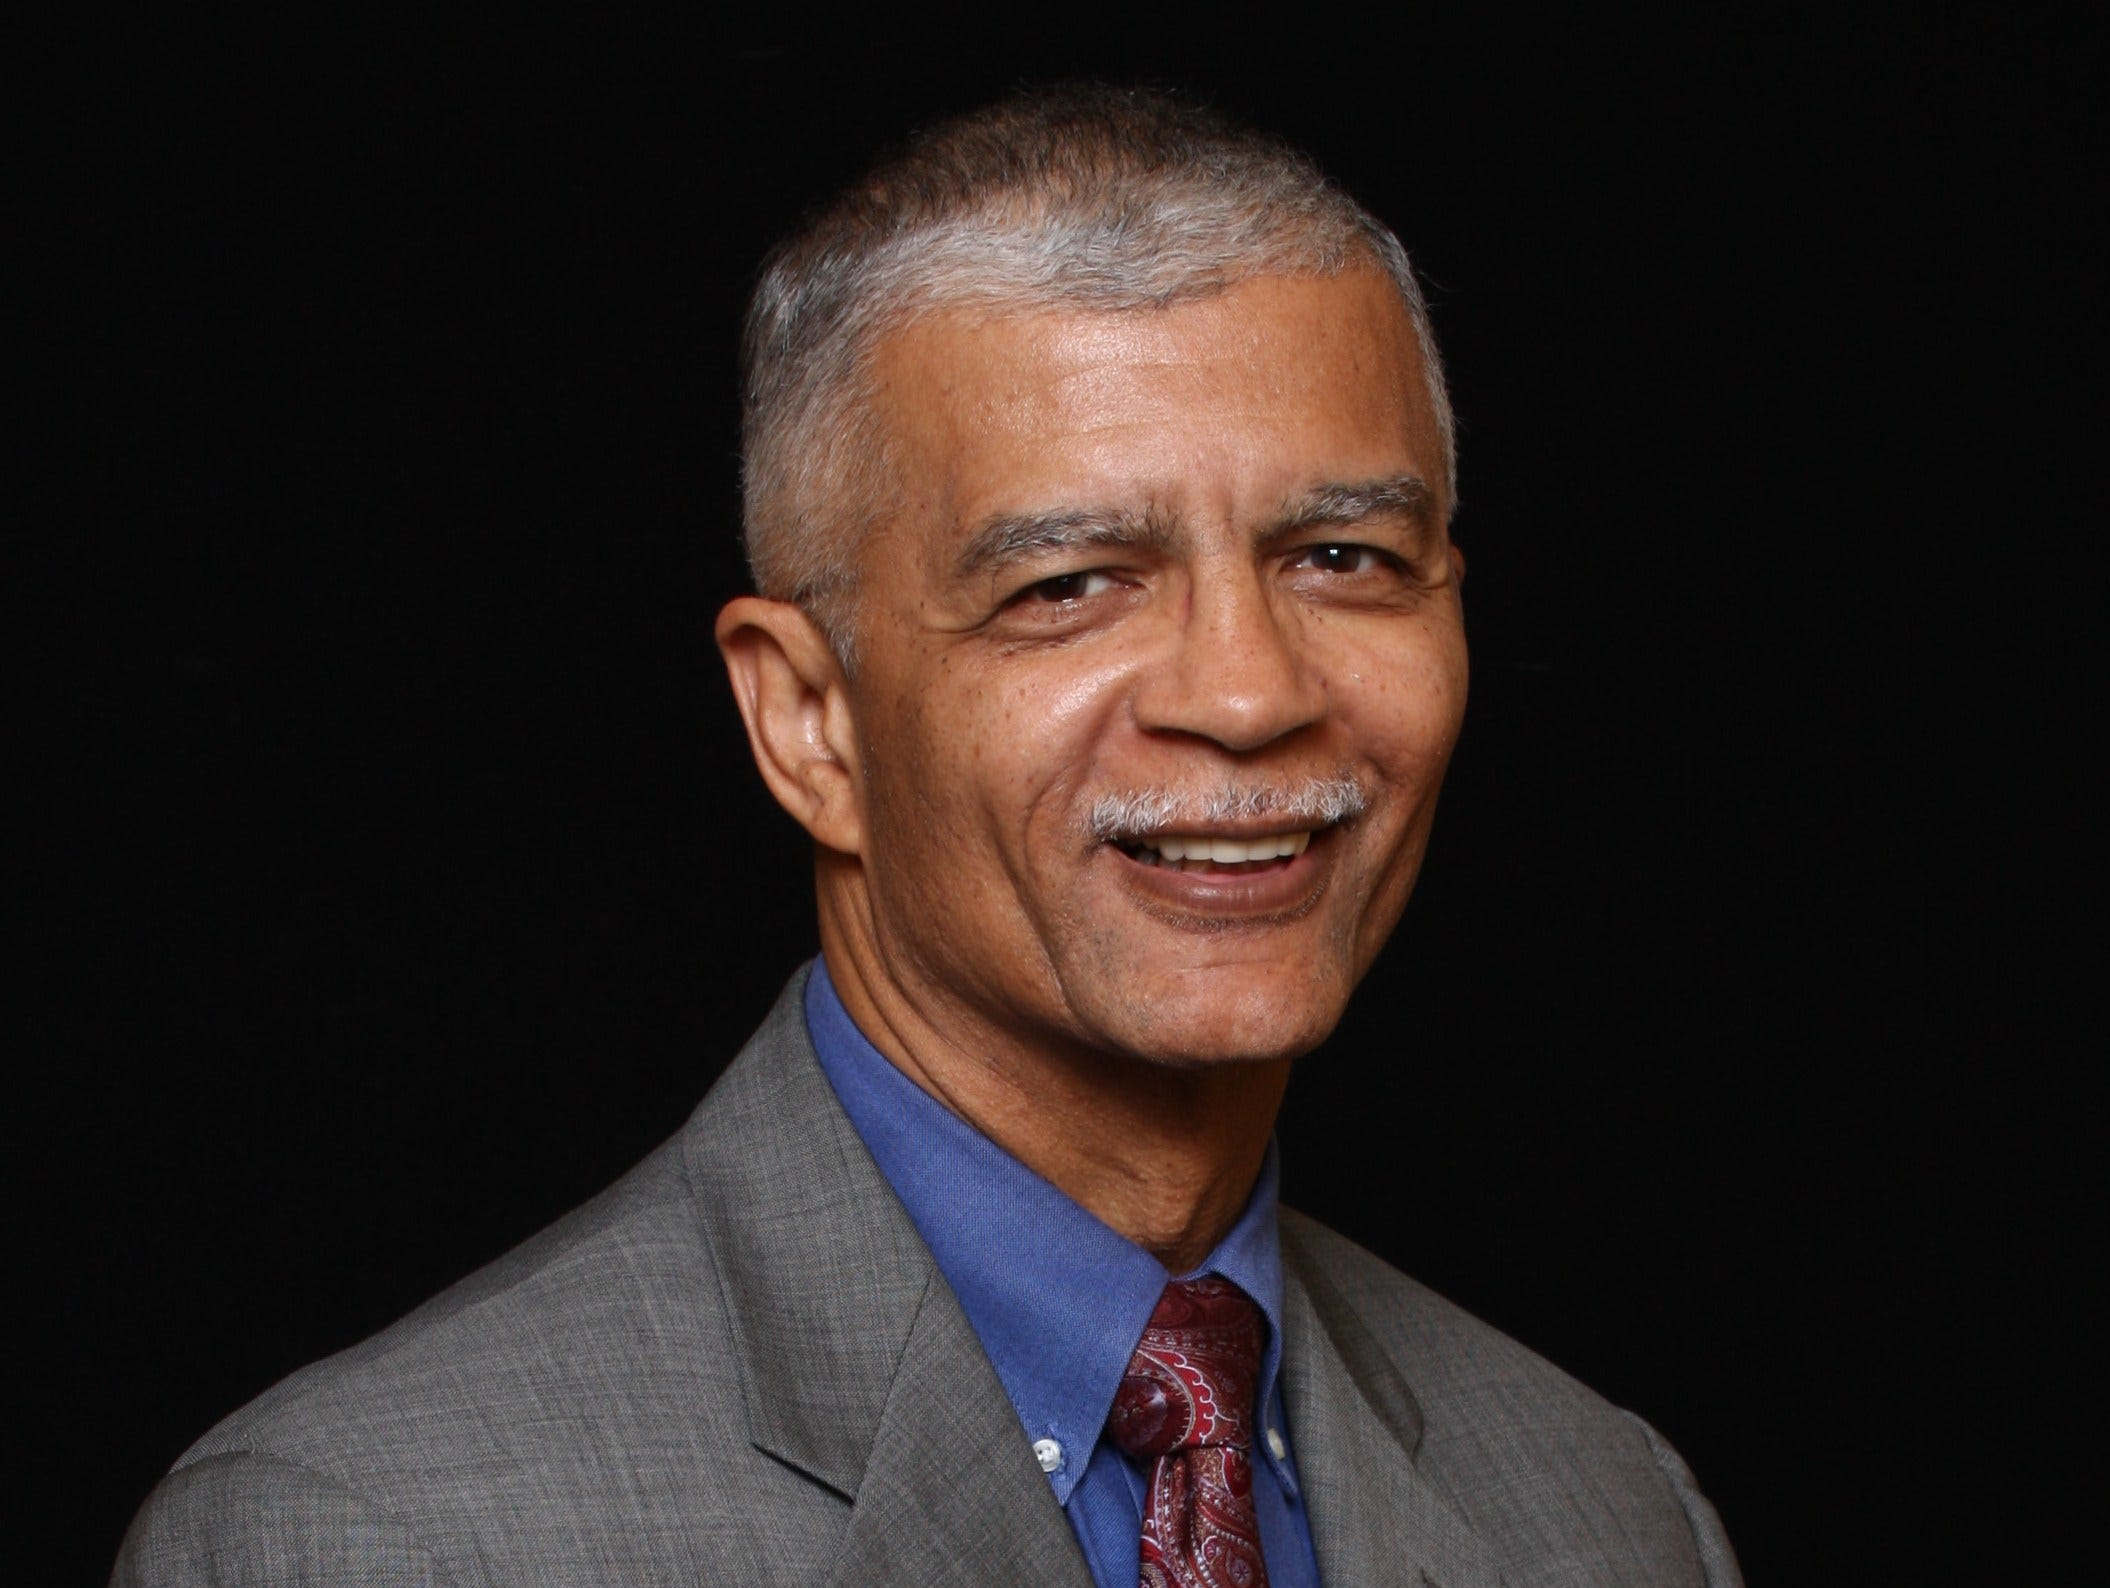 Chokwe Lumumba is a Jackson attorney and a candidate for Ward 2 in 2009.